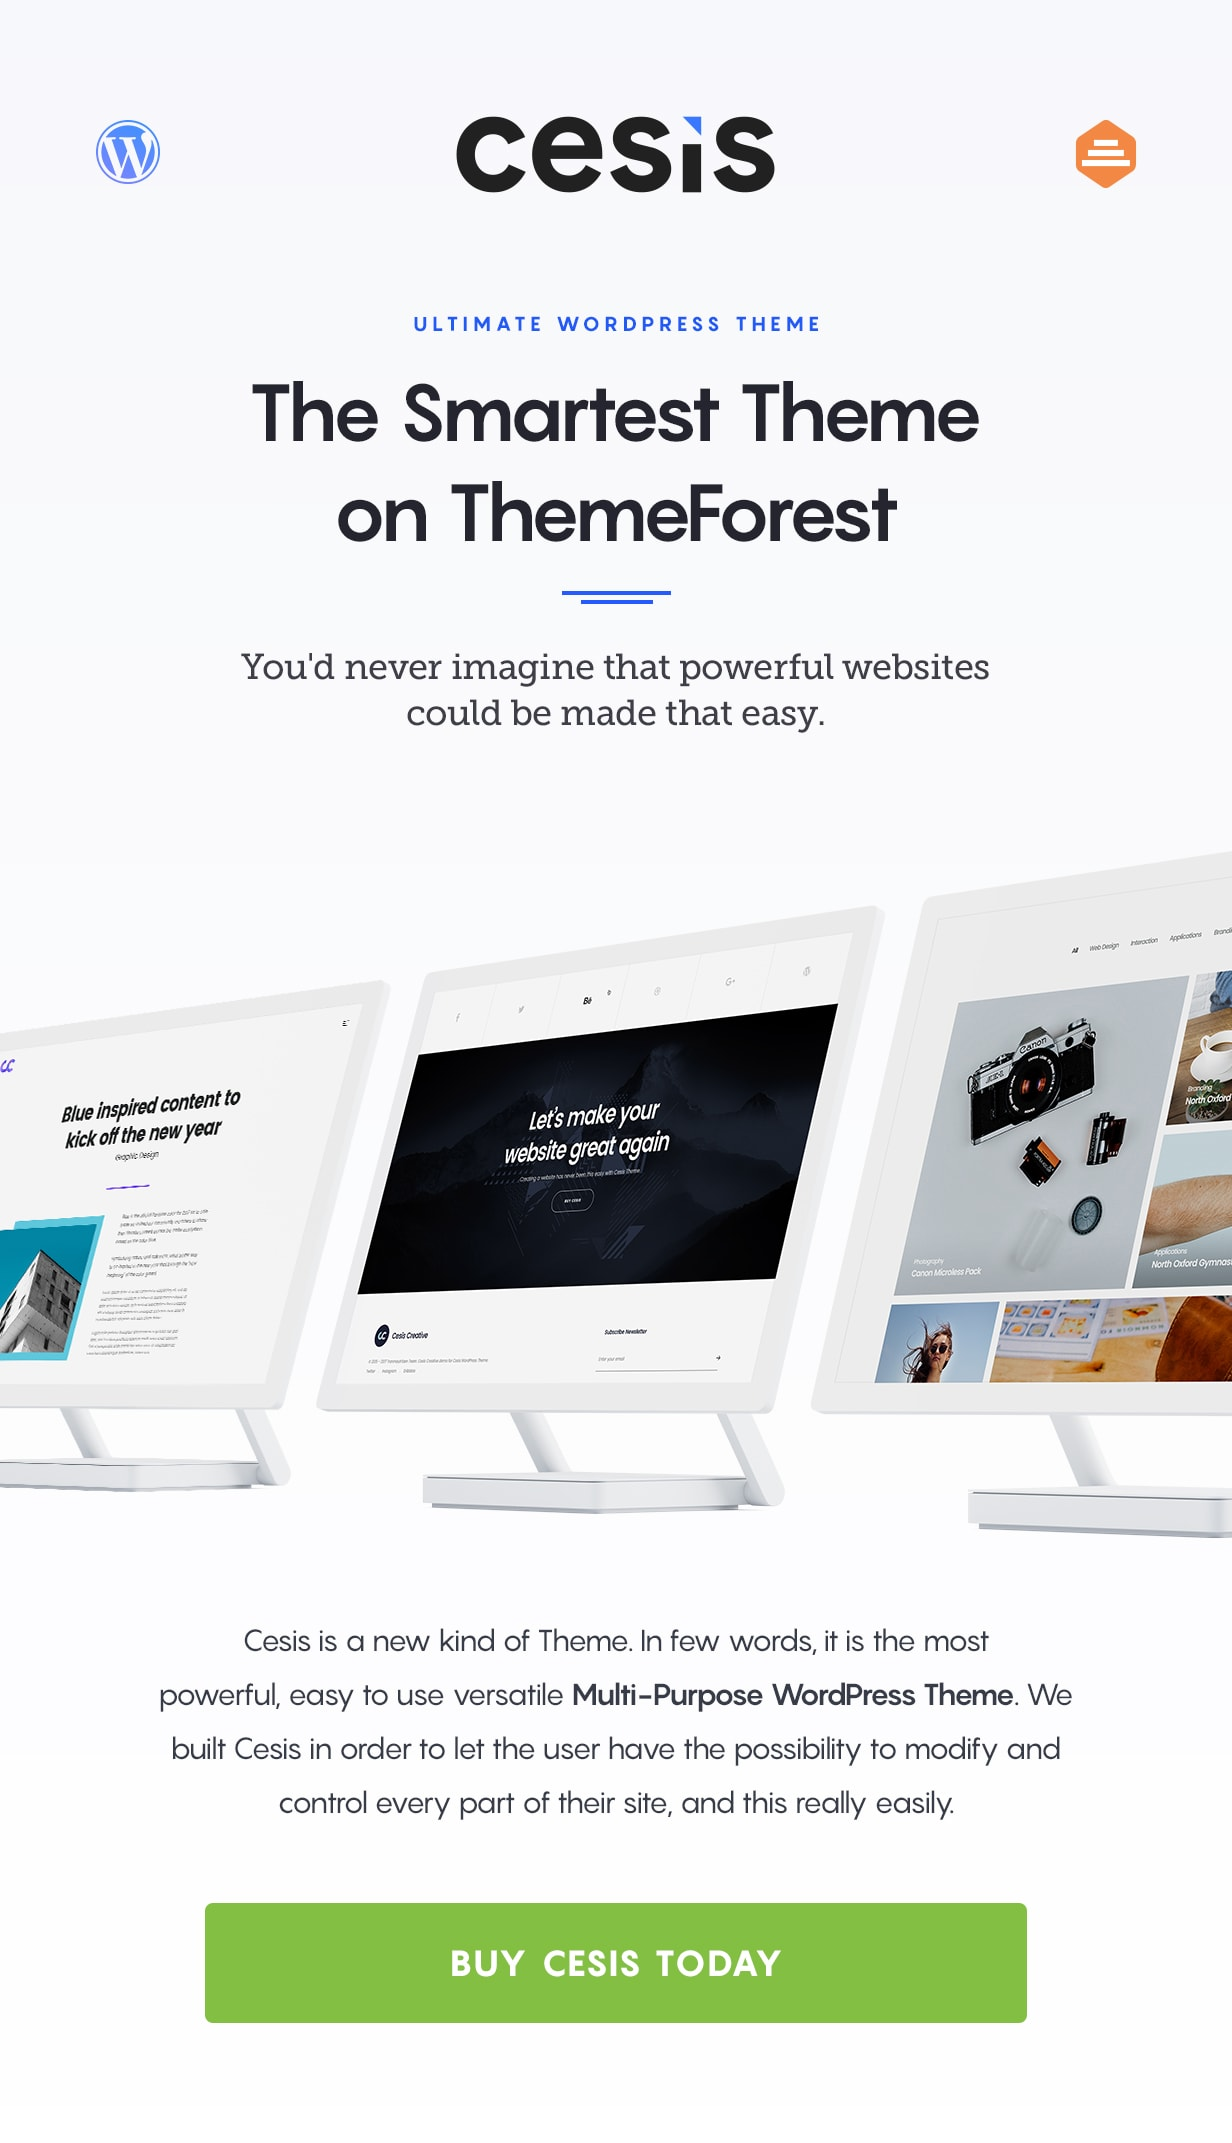 cesis wordpress theme - the powerful theme on themeforest